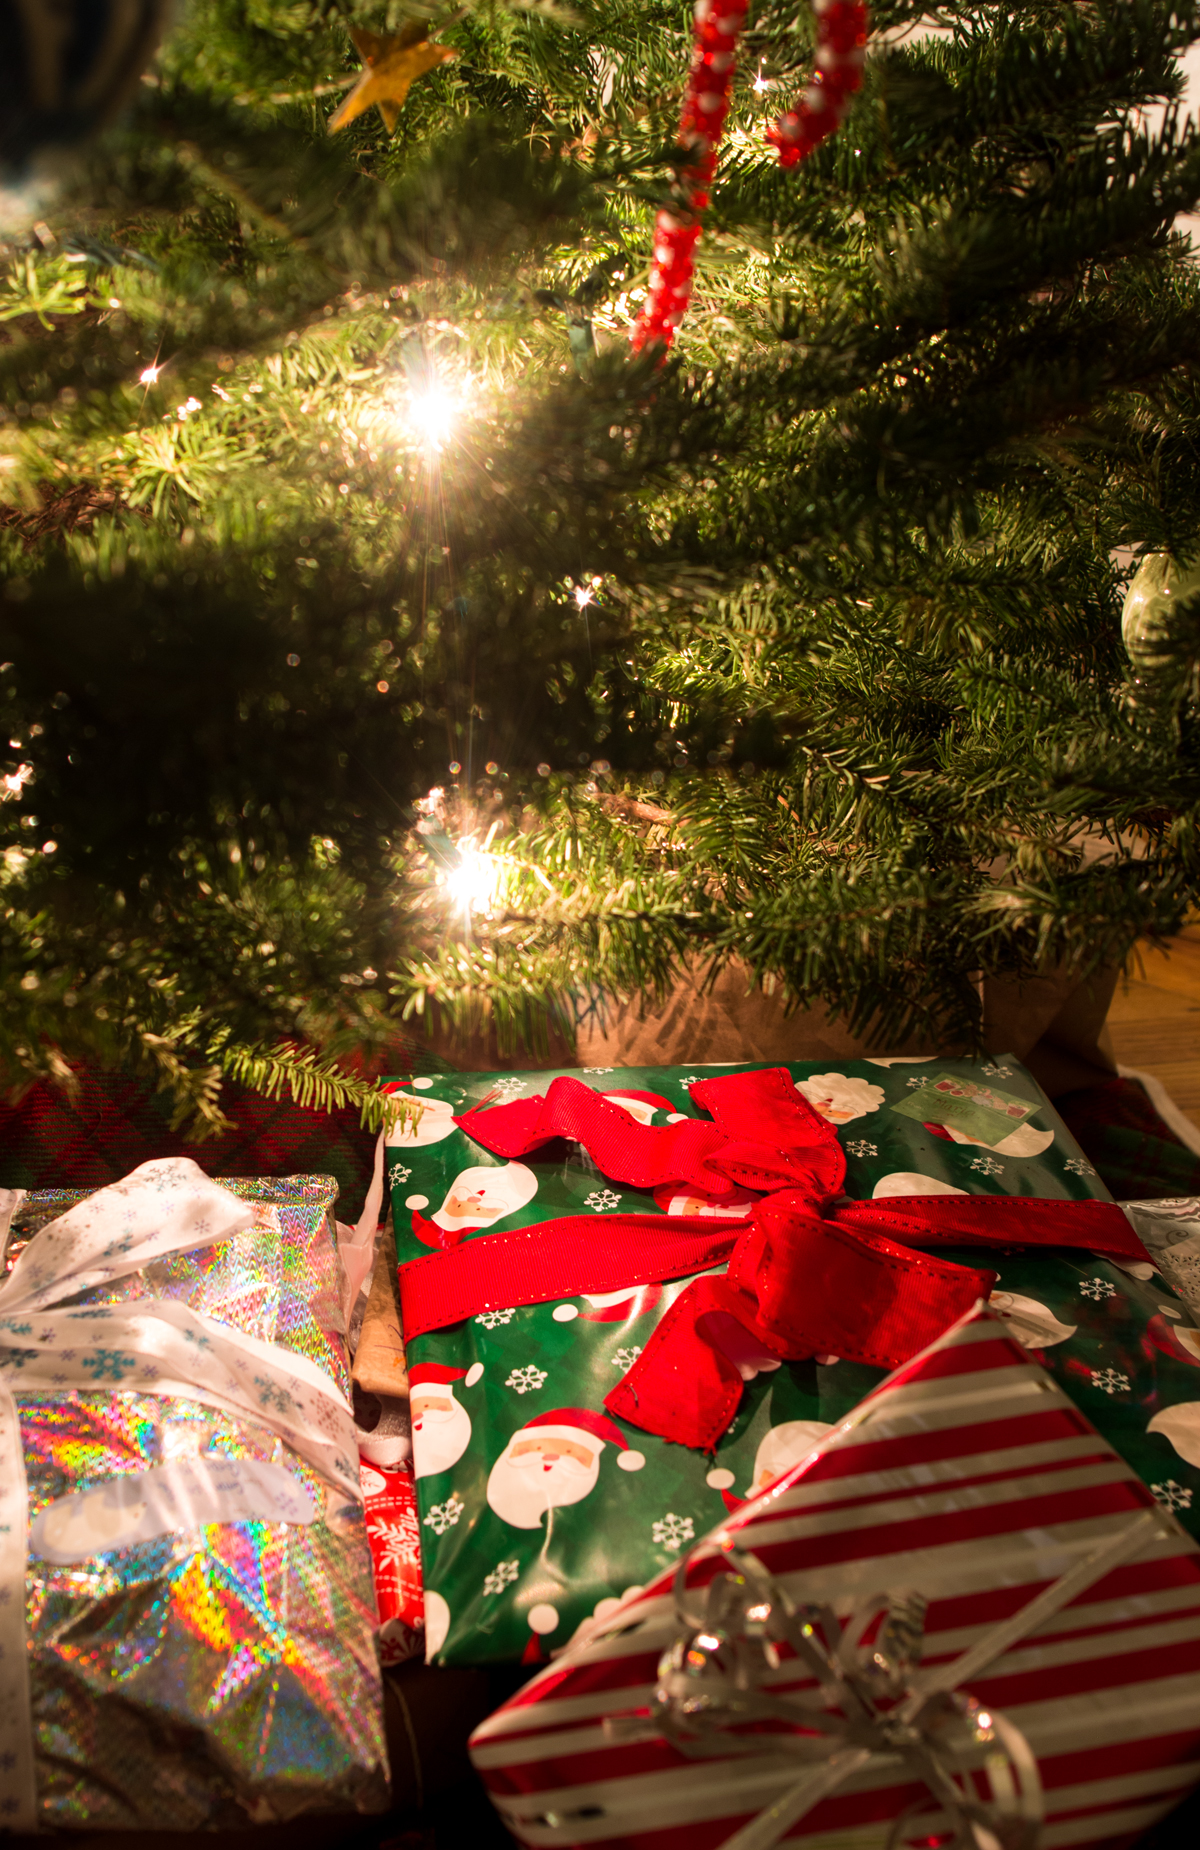 christmas traditions when do you open presents far out city - When Do You Open Christmas Presents